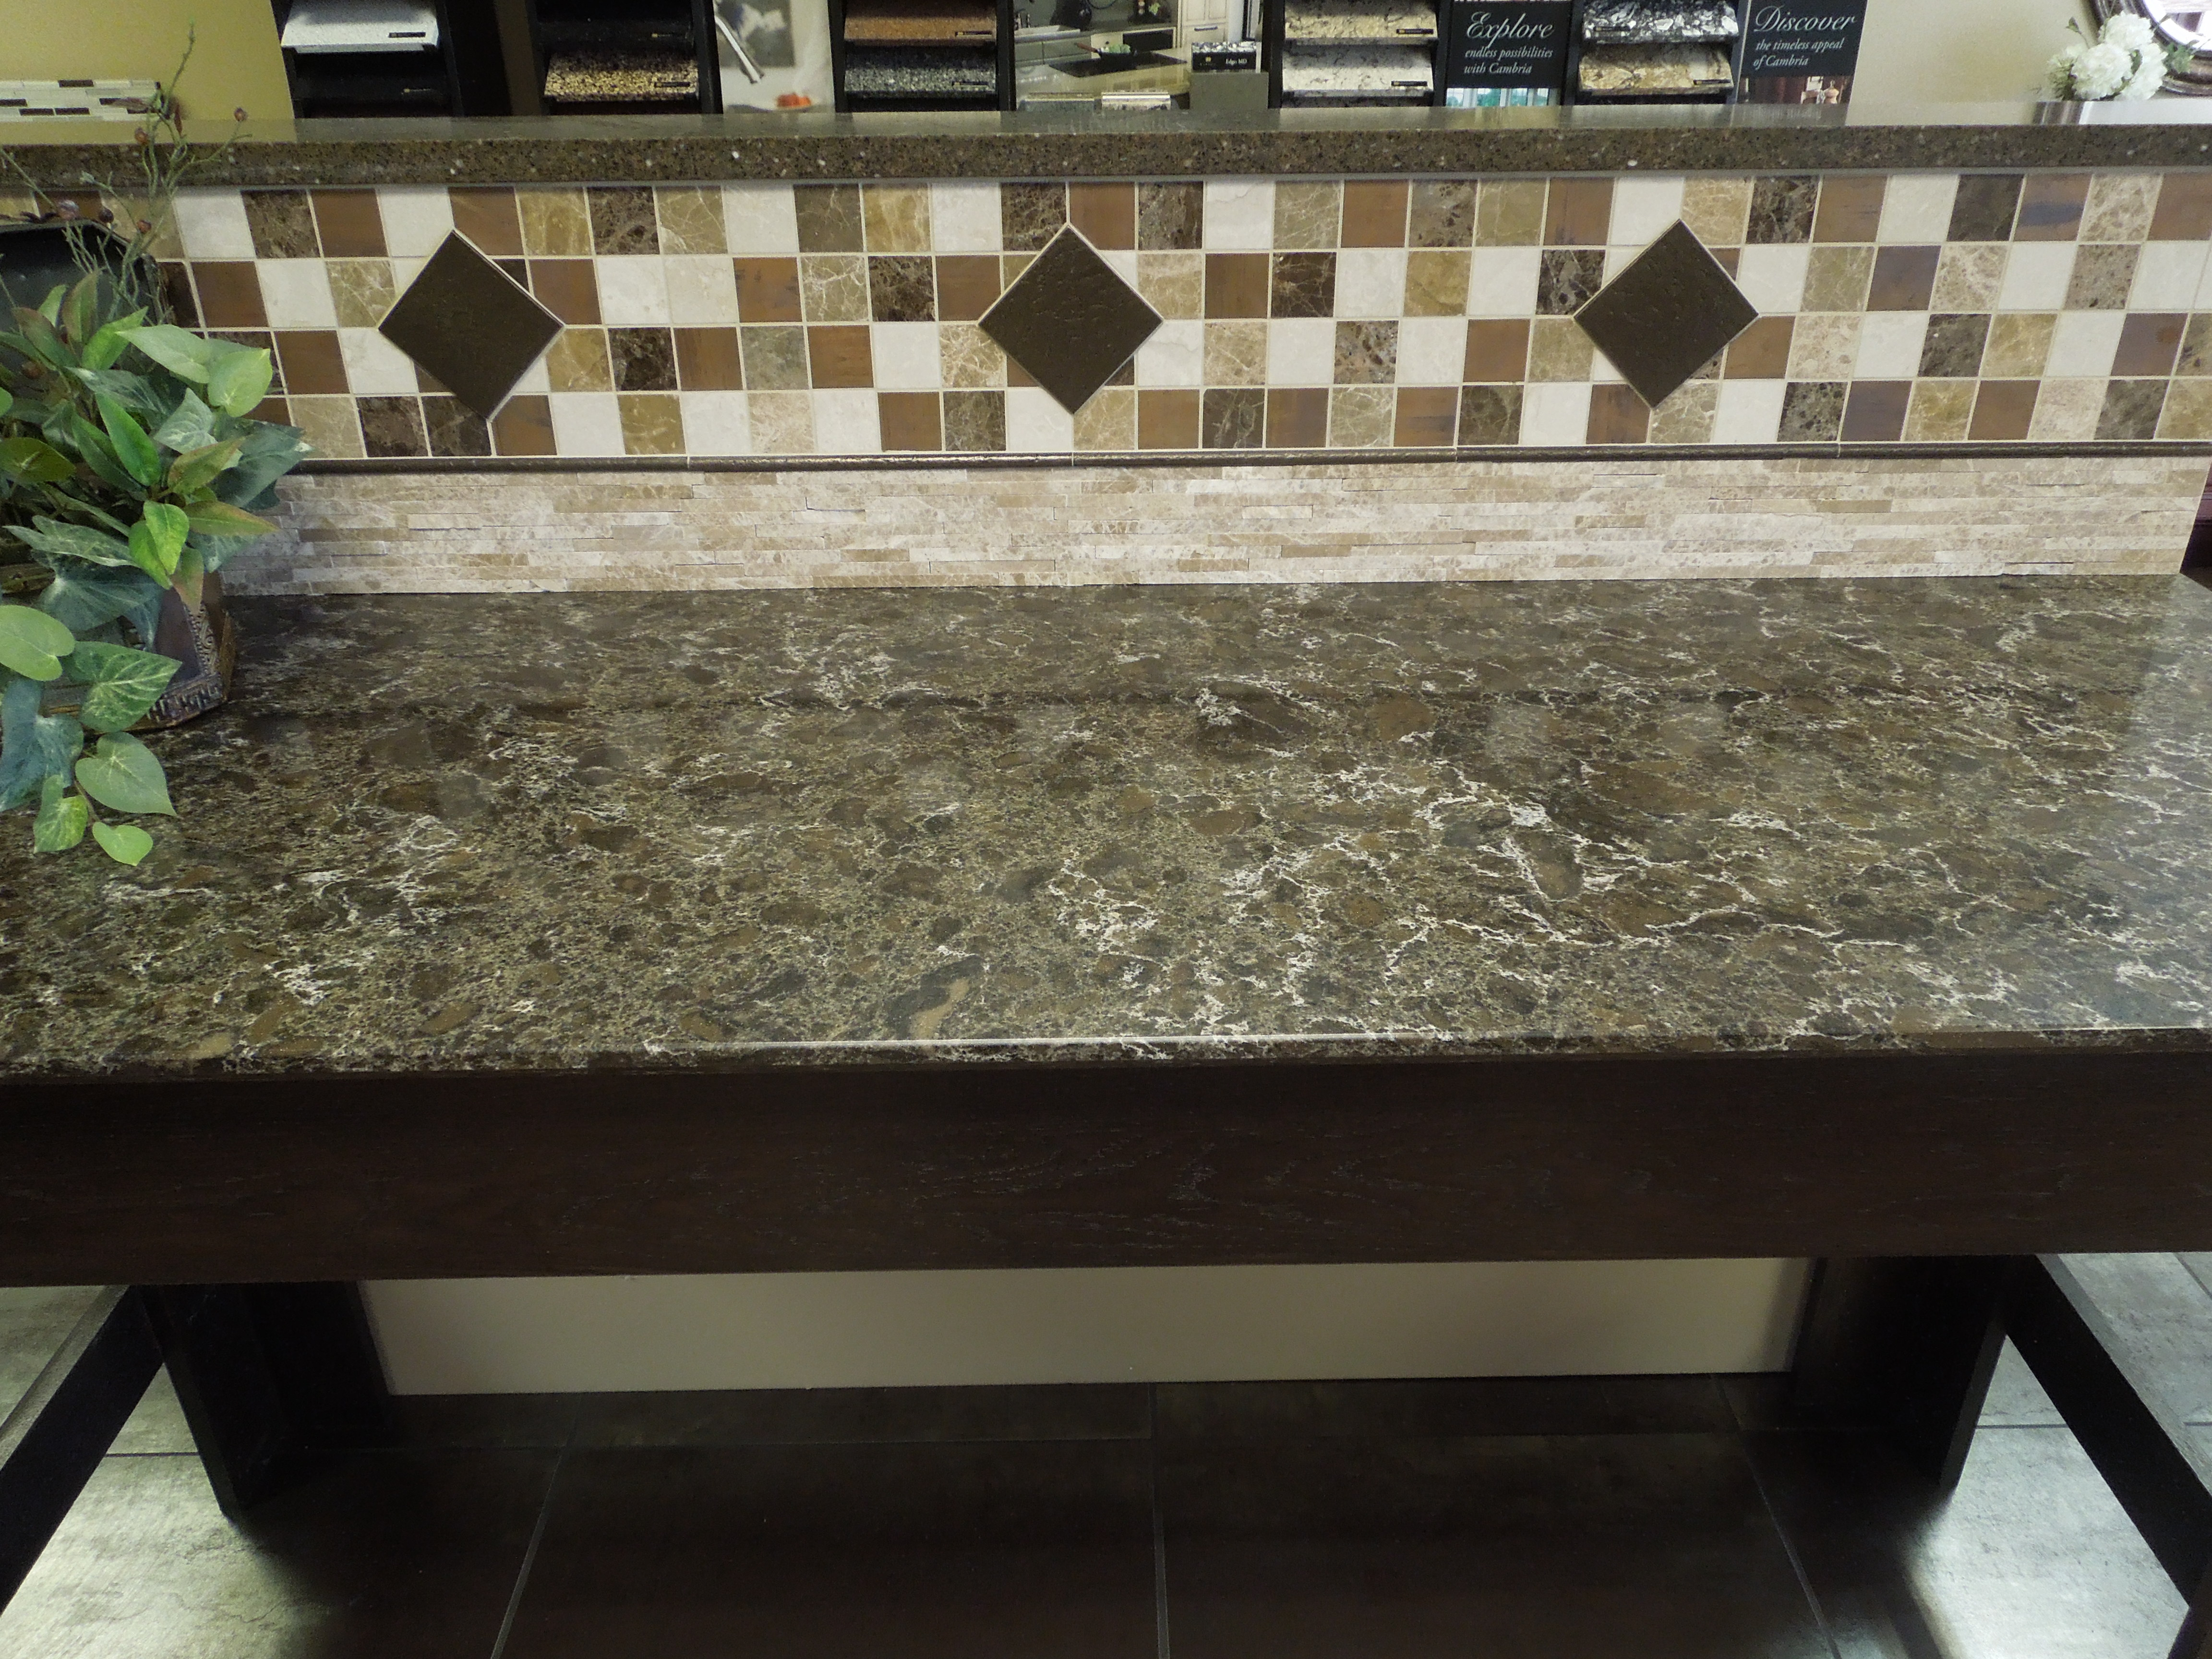 Whats a countertop without awesome tile backsplash creative random 22 tile with 44 metallic separated with metallic pencil strip mosiac tile backsplash dailygadgetfo Choice Image